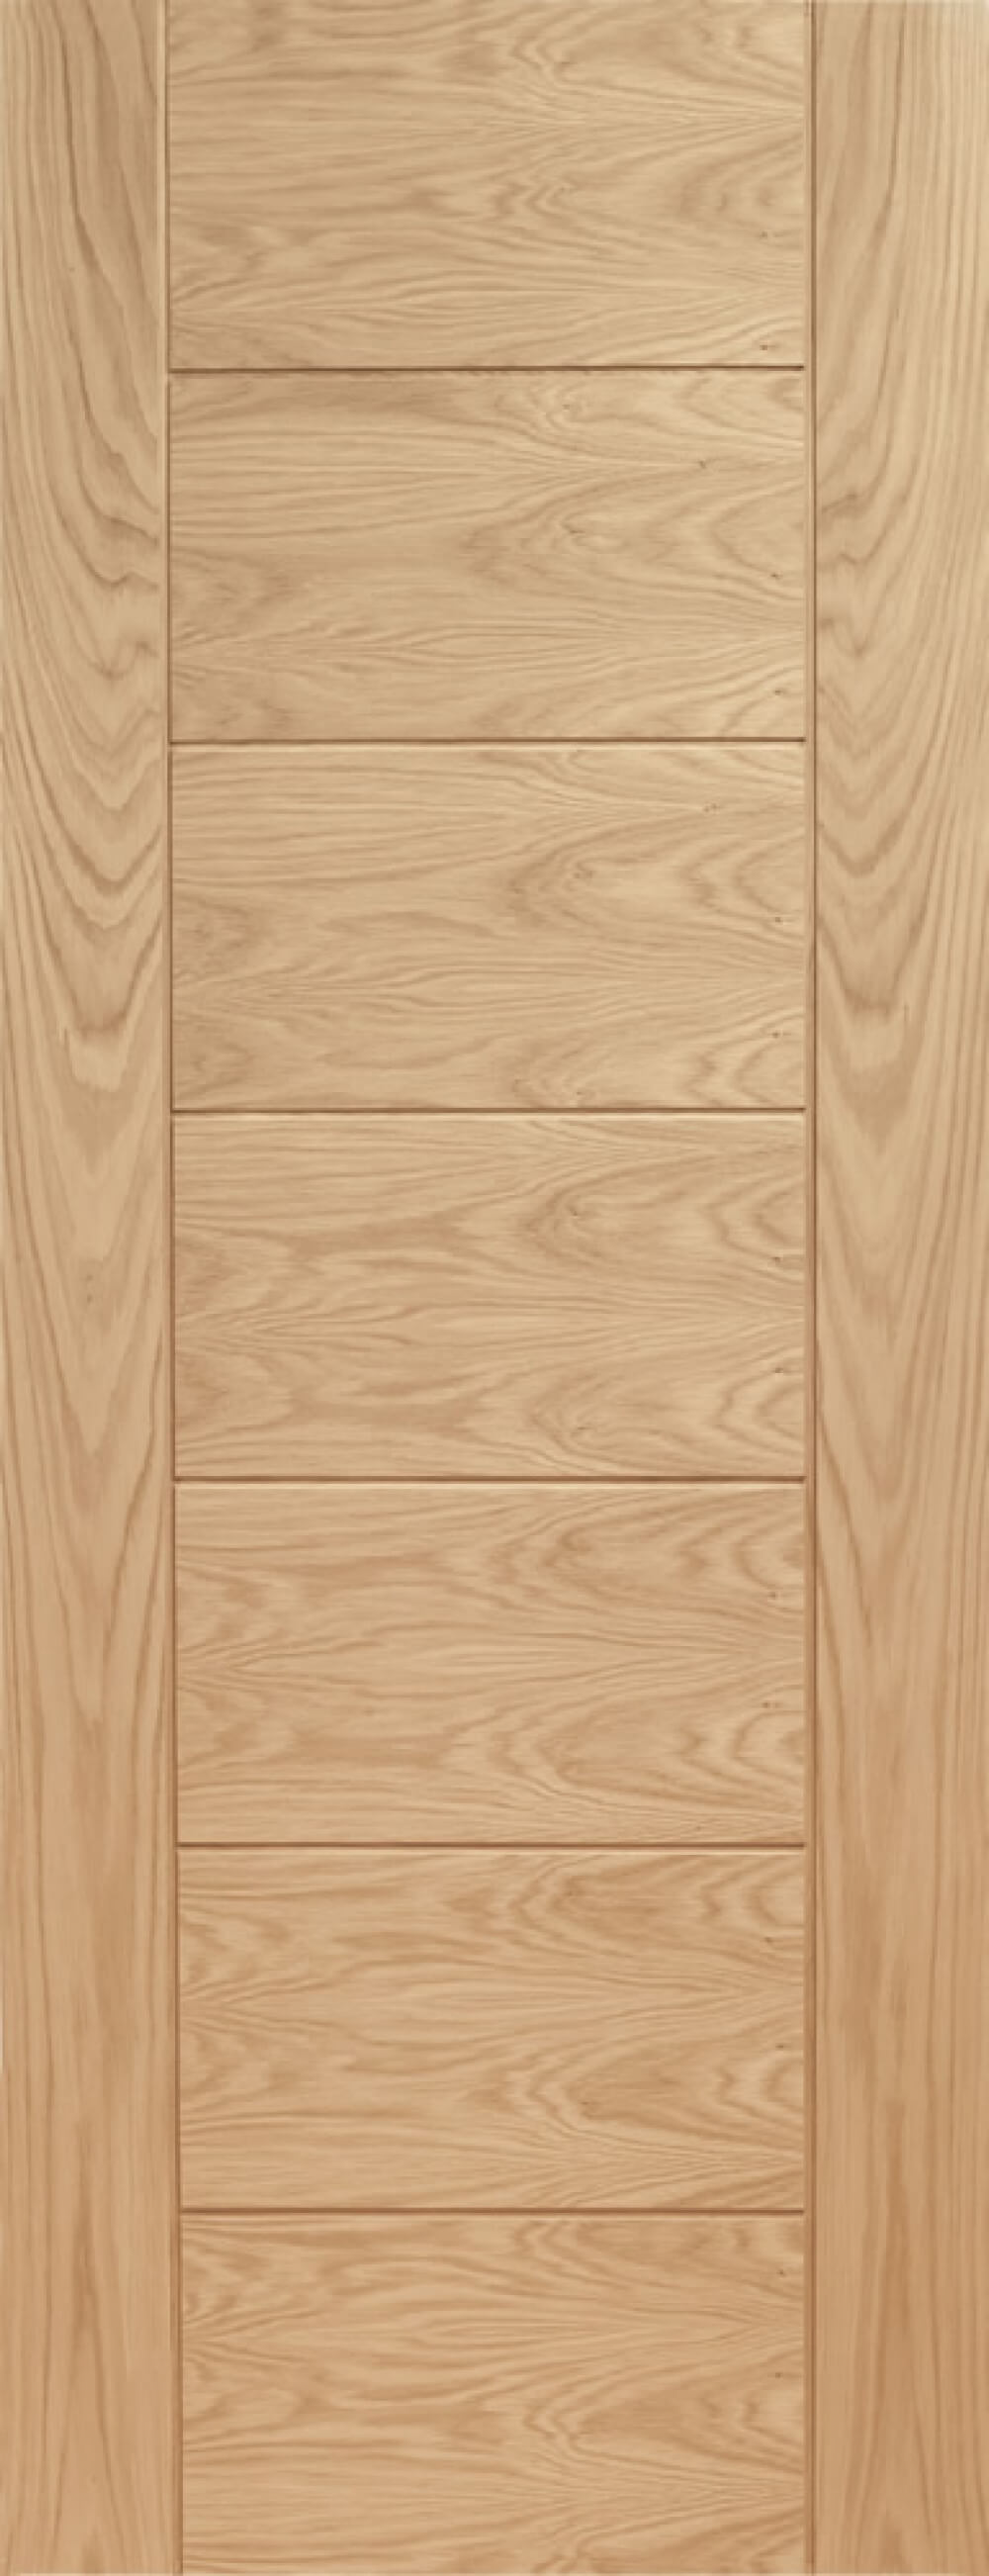 Palermo Oak Door - PREFINISHED